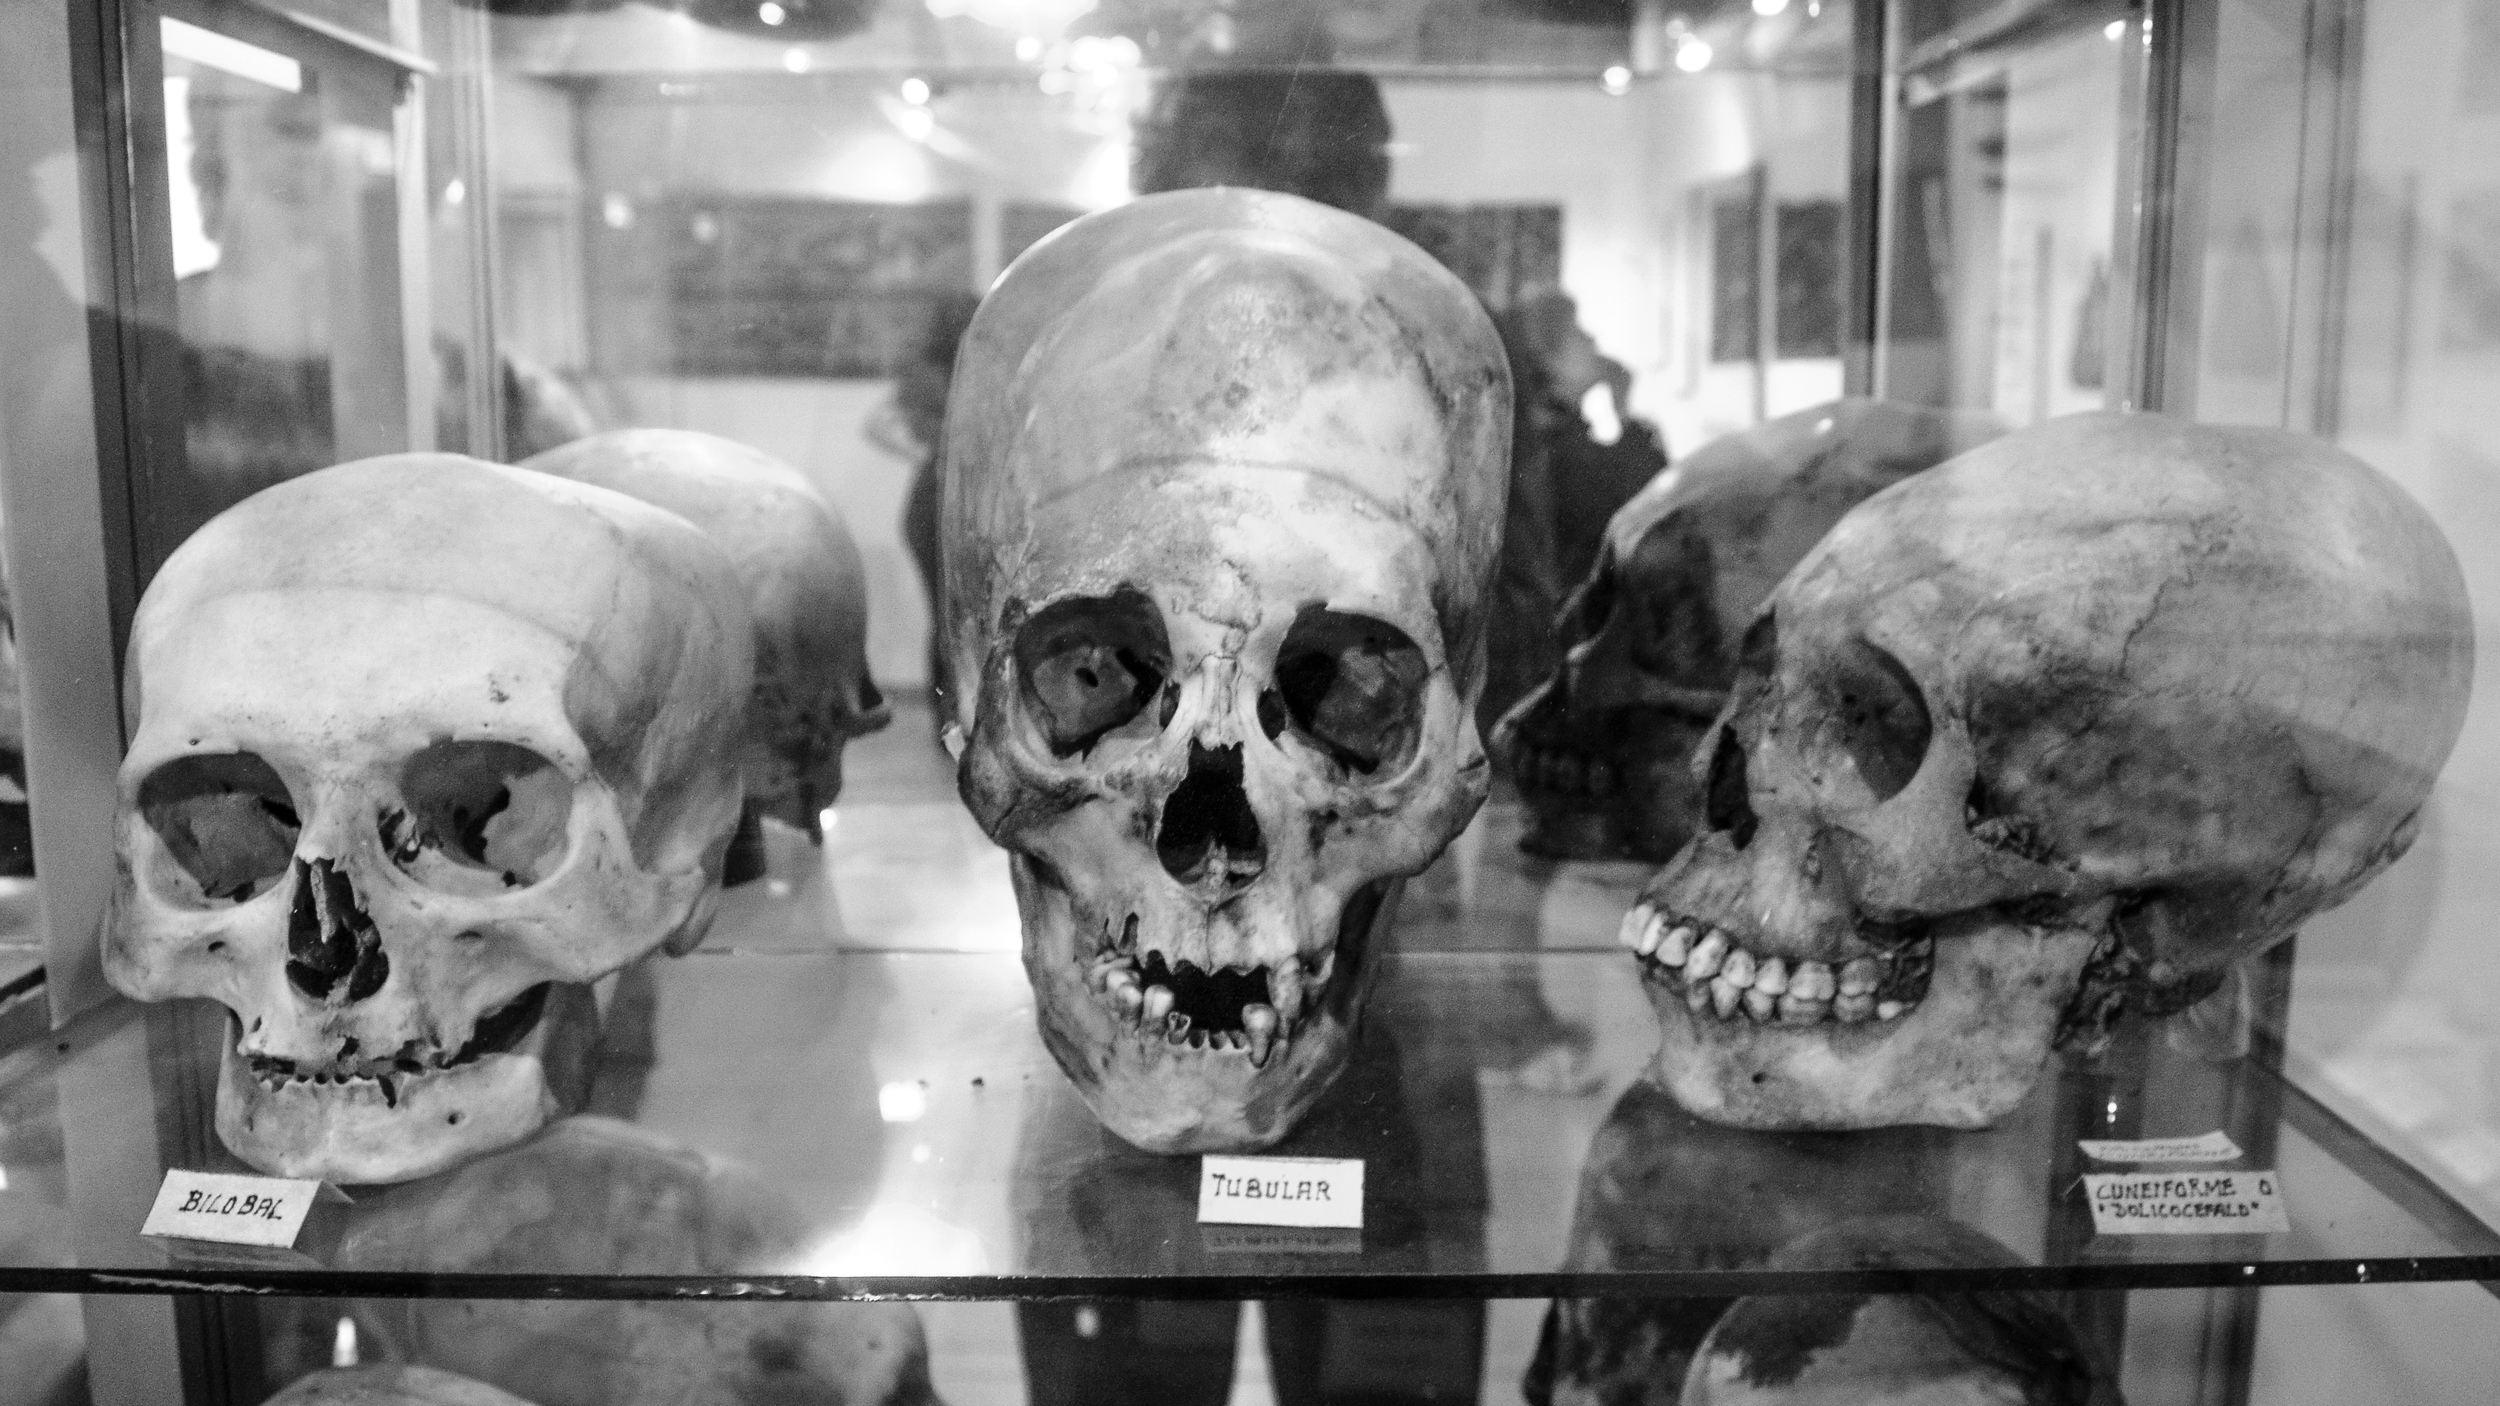 The Paracas culture were believed to treat psychological disorders and physical trauma through bloodletting which required drilling holes in the skull.